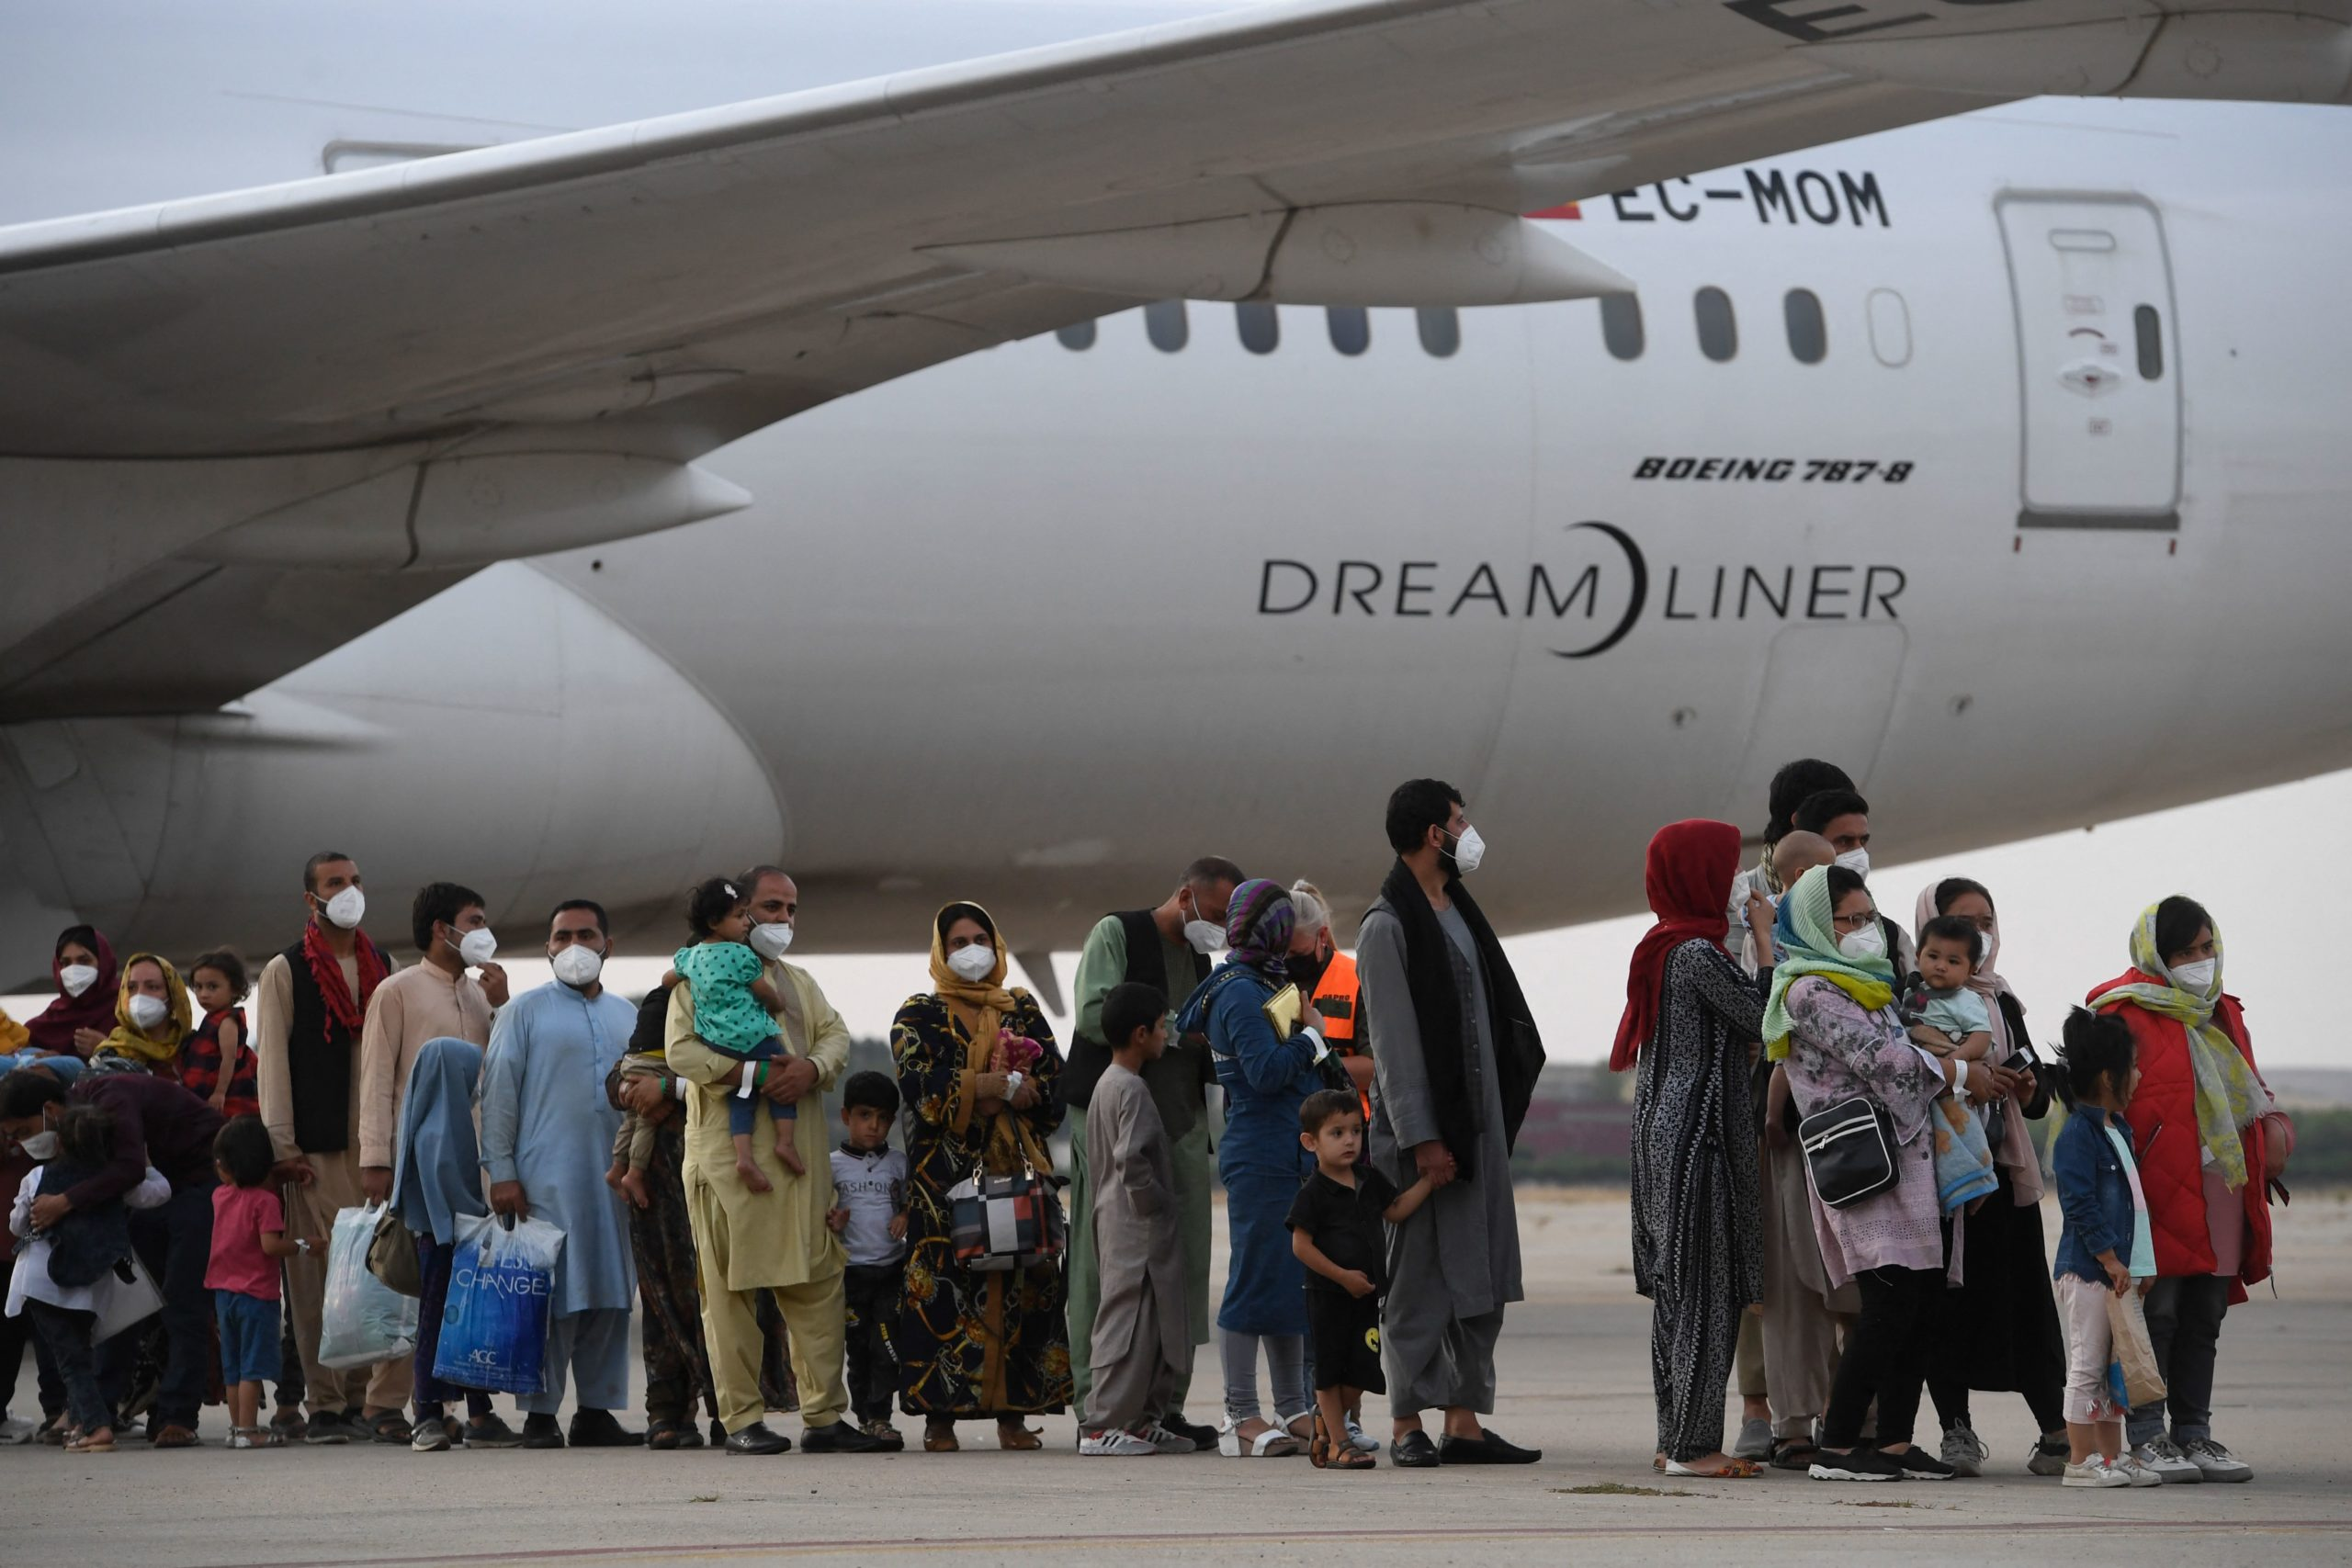 Refugees queue on the tarmac after disembarking from an evacuation flight from Kabul, at the Torrejon de Ardoz air base, 30 km from Madrid, on August 24, 2021. - Spain has been evacuating its nationals and local contractors from Afghanistan via Dubai since the Taliban swept to power ten days ago. Another 420 people are expected to arrive in Spain on August 24, 2021, including 290 people from Dubai and 130 who are expected to leave on a Spanish military plane from Kabul. (Photo by PIERRE-PHILIPPE MARCOU/AFP via Getty Images)